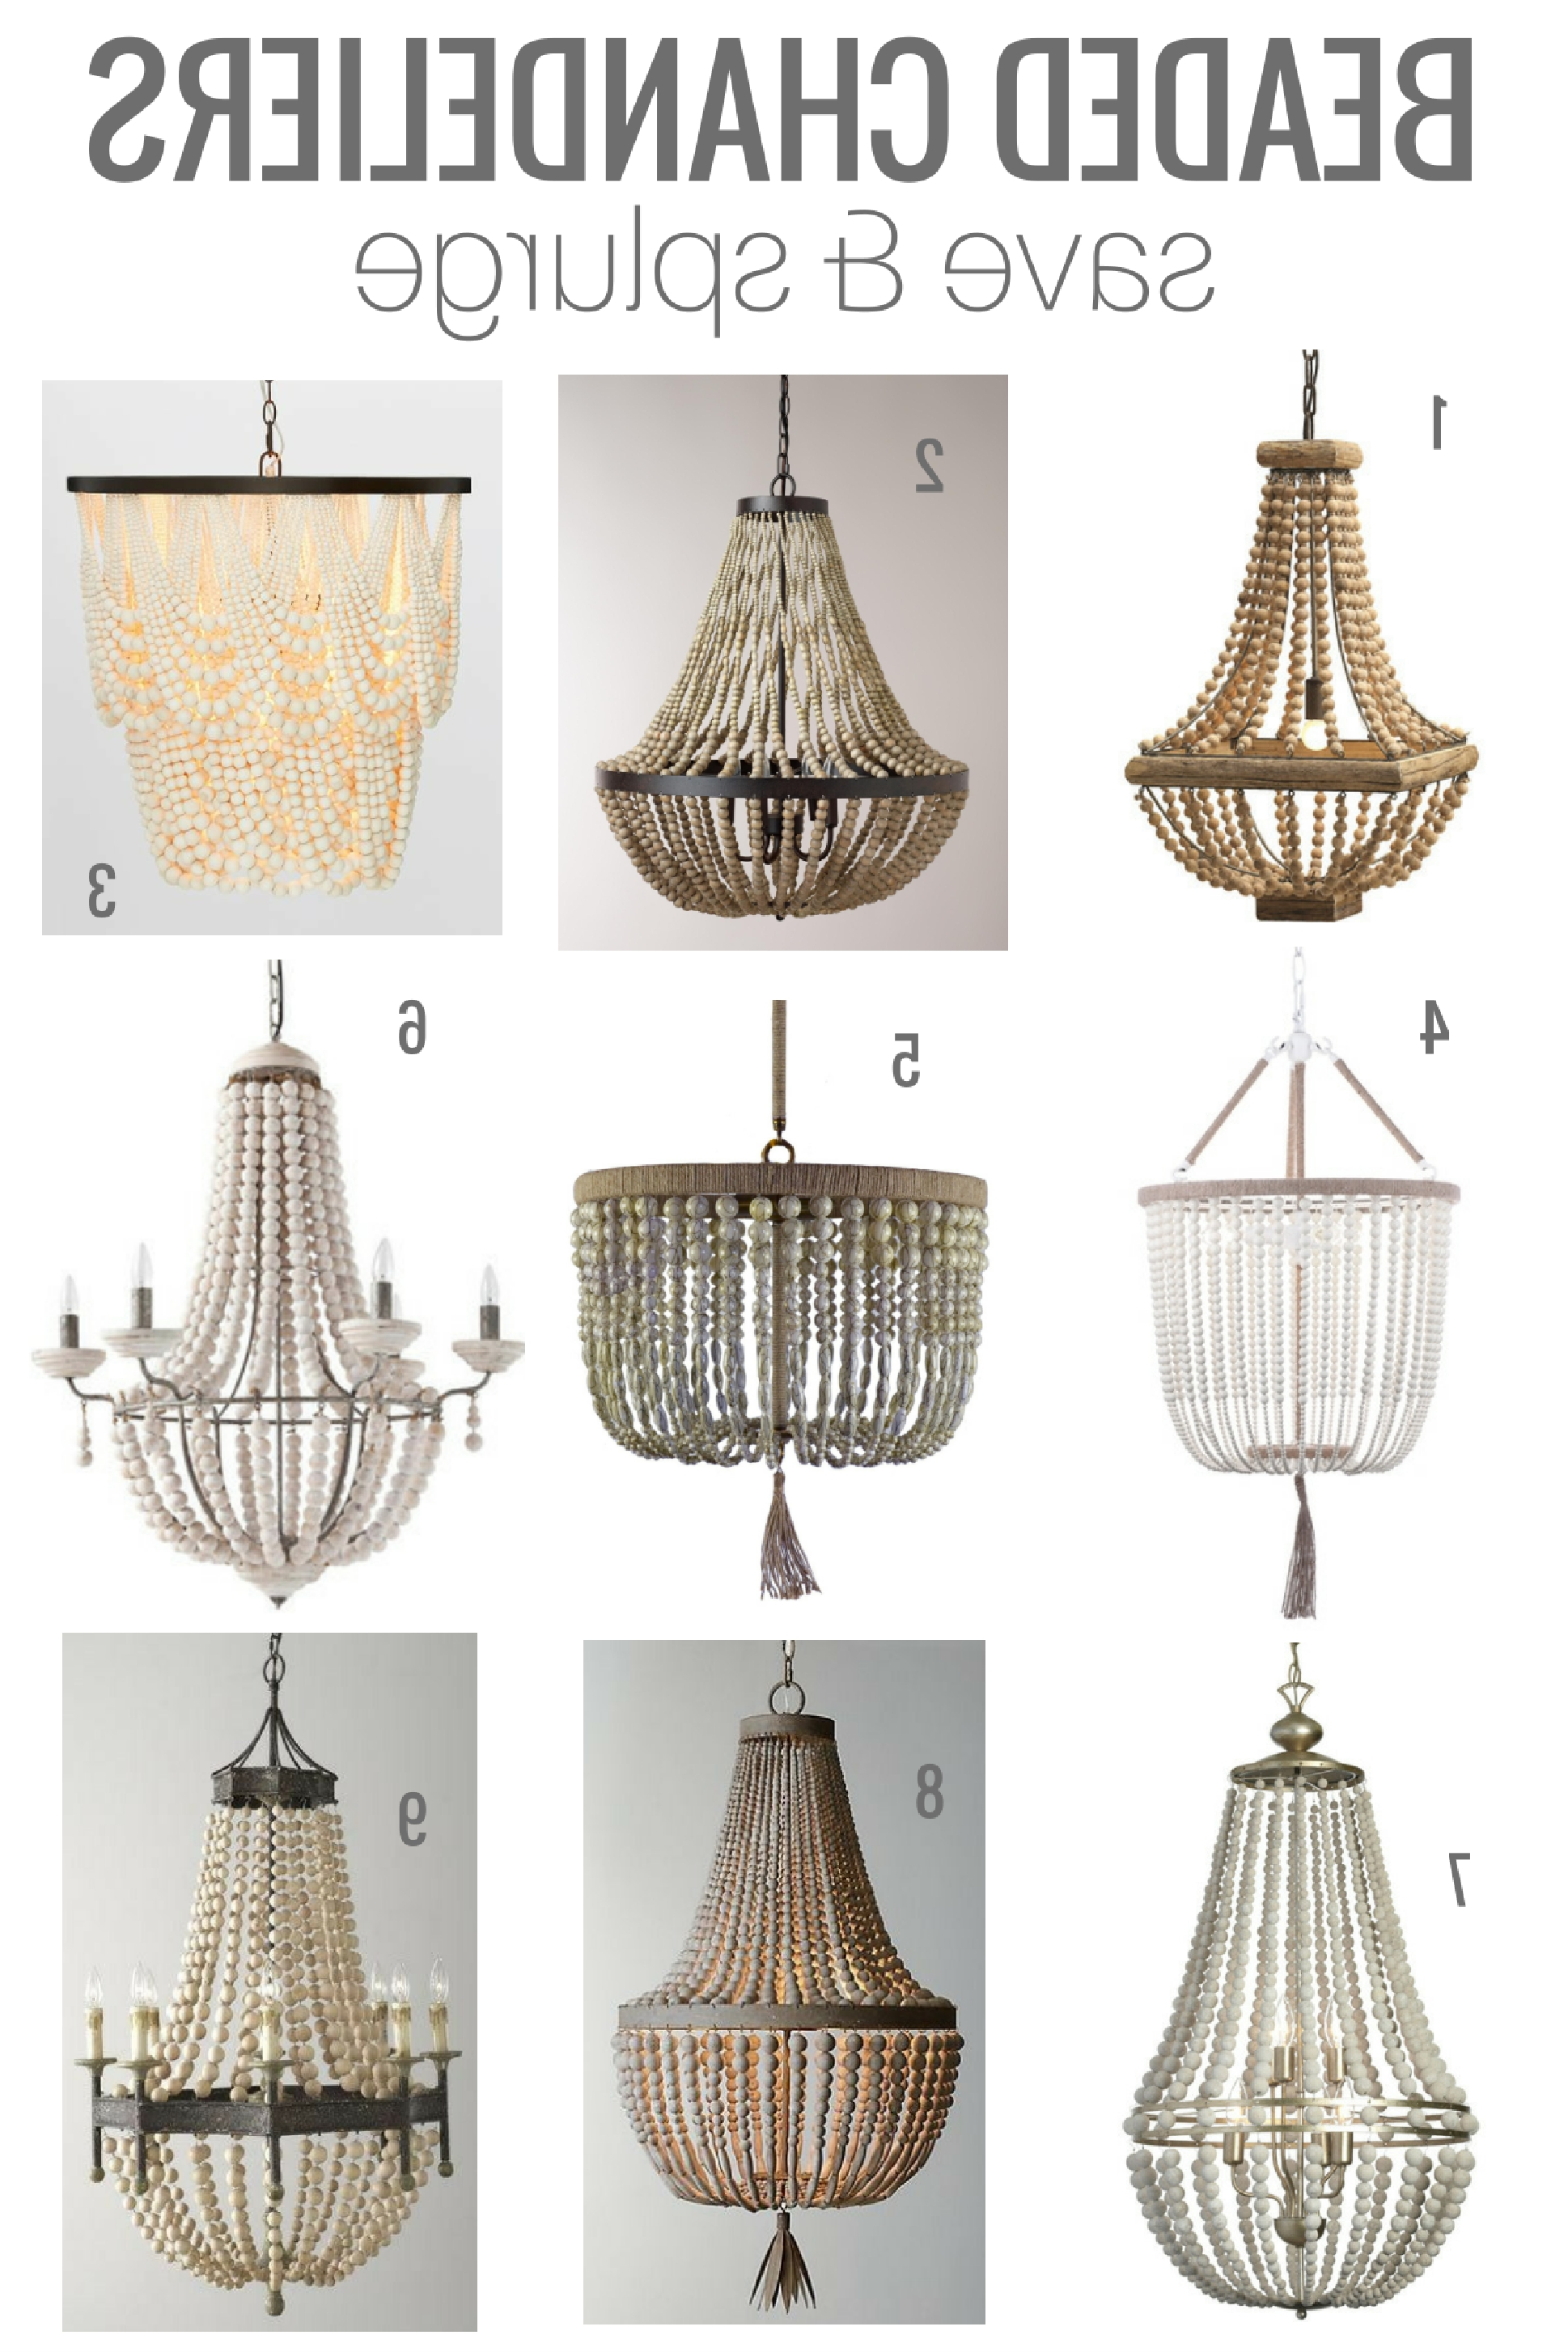 2018 Small Turquoise Beaded Chandeliers Intended For Beaded Chandeliers & Invaluable Lighting Lessons (View 4 of 20)